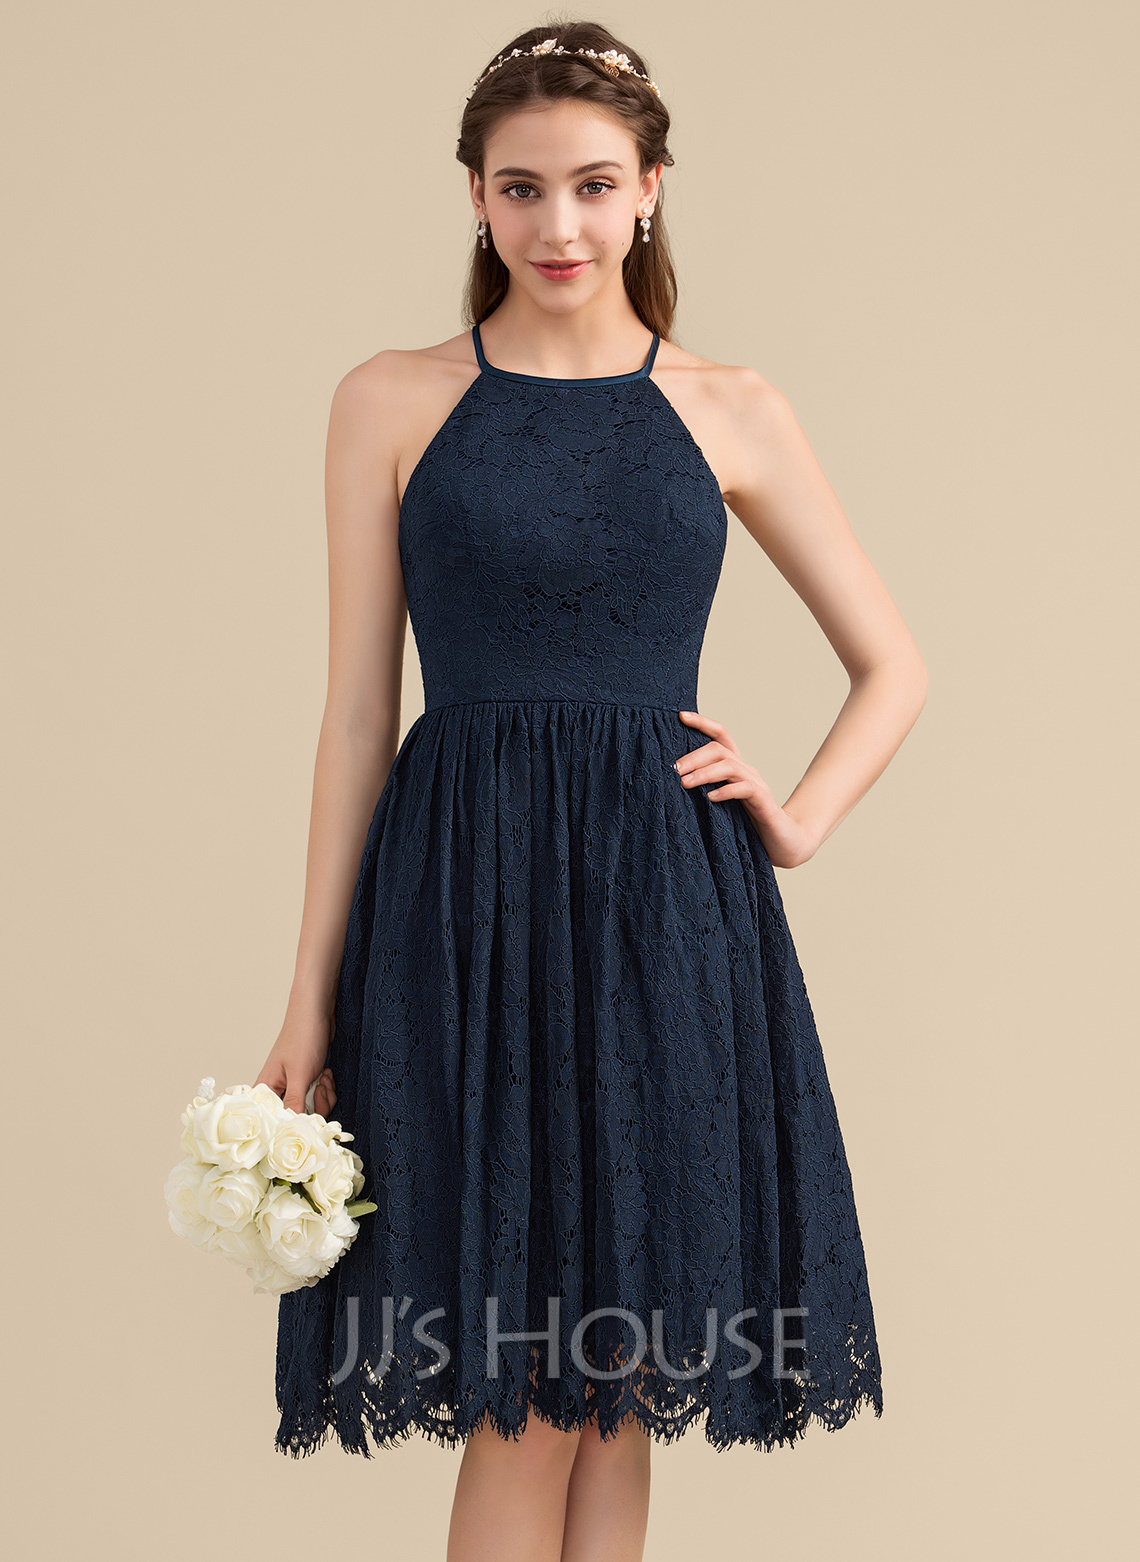 Scoop Neck Knee-Length Lace Bridesmaid Dress